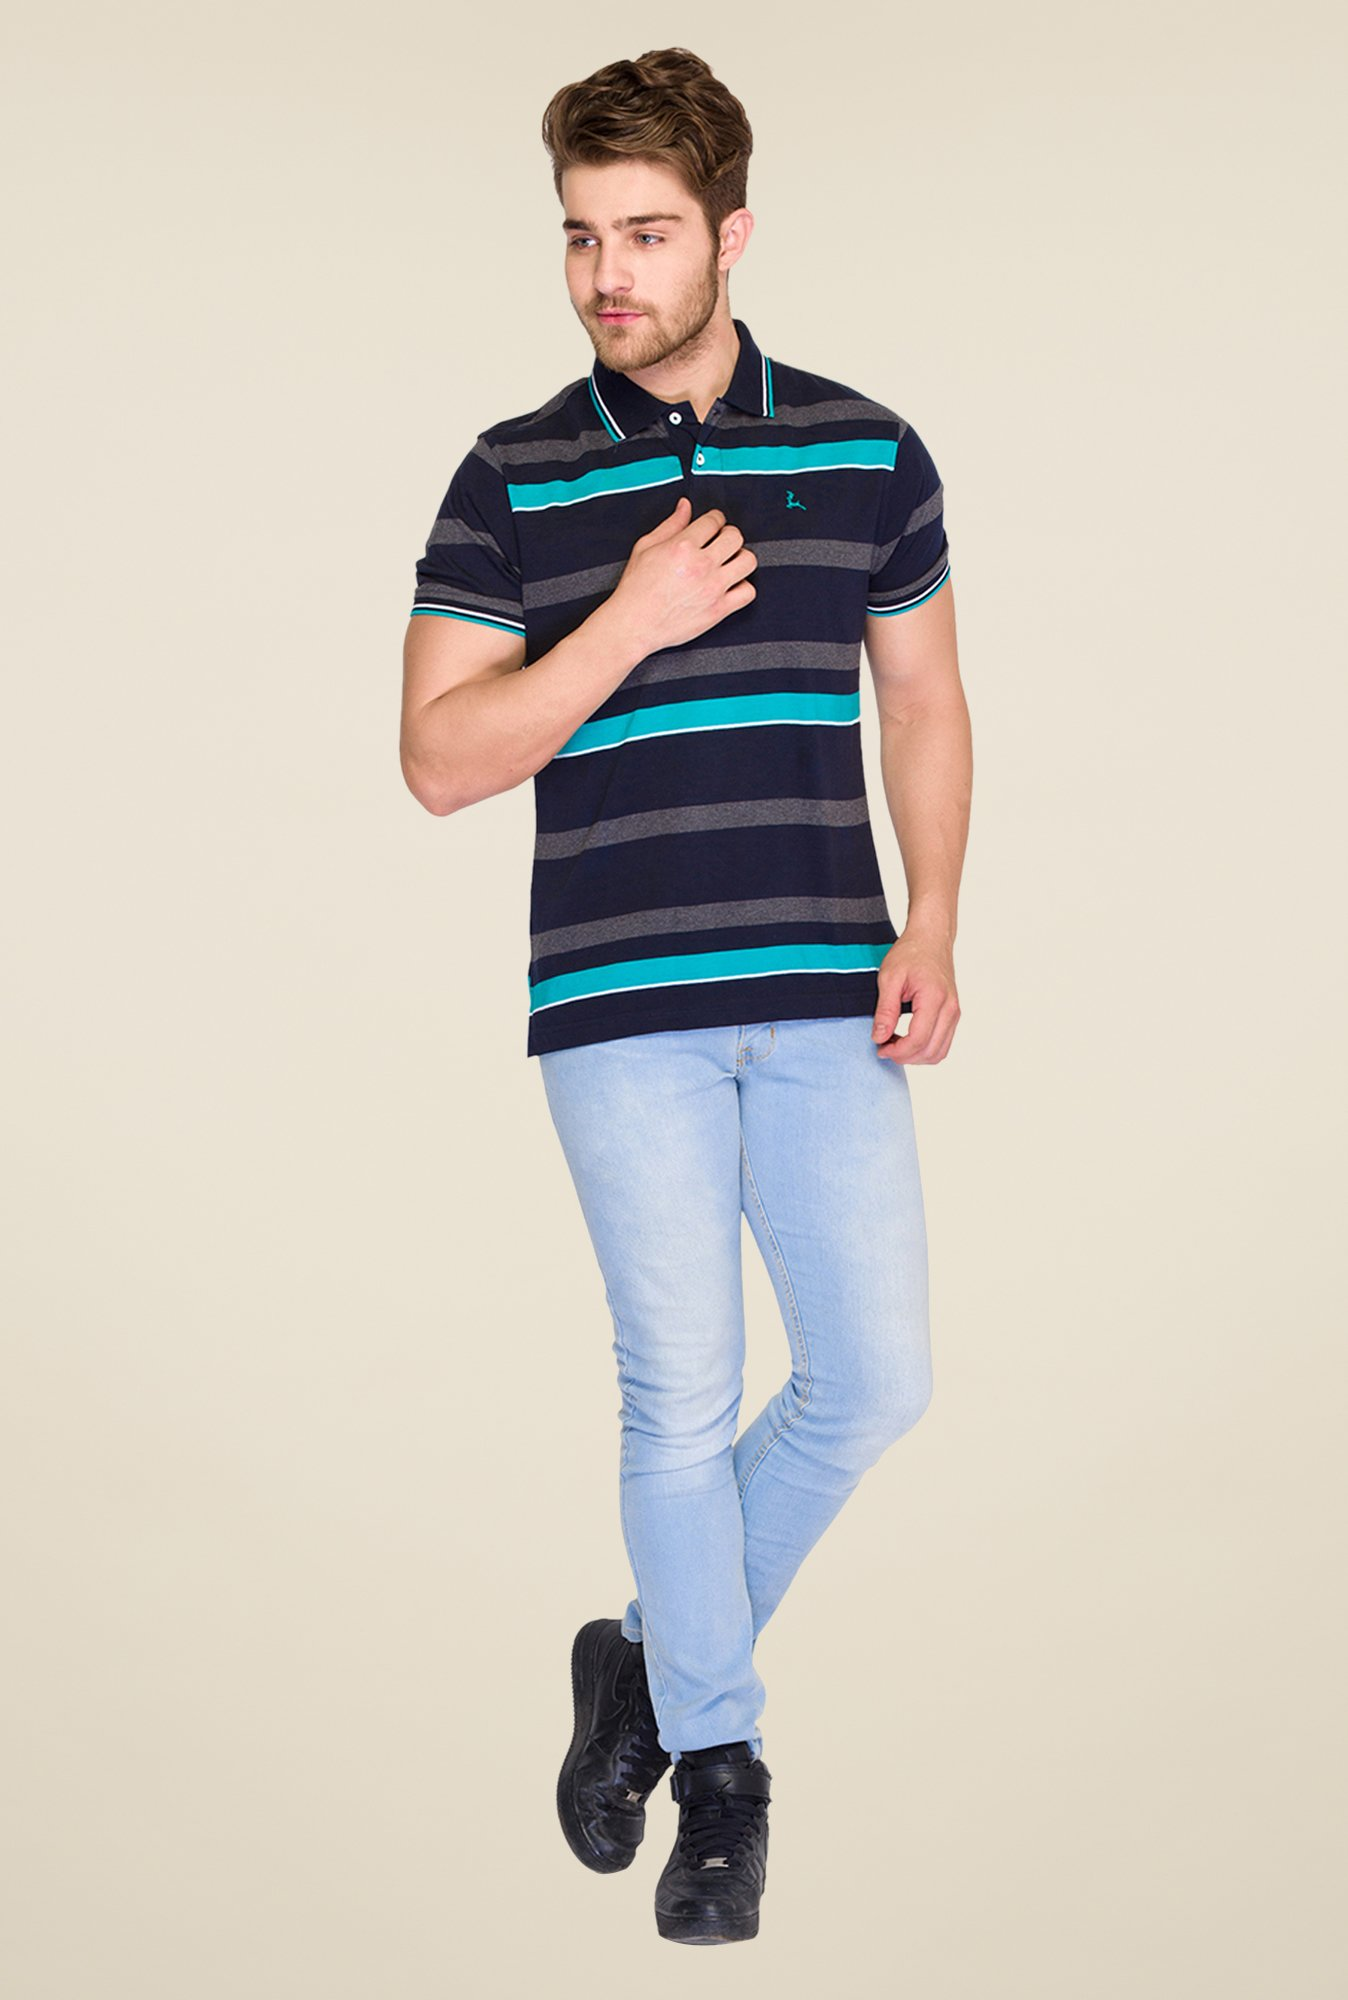 Parx Blue & Black Striped Polo T Shirt